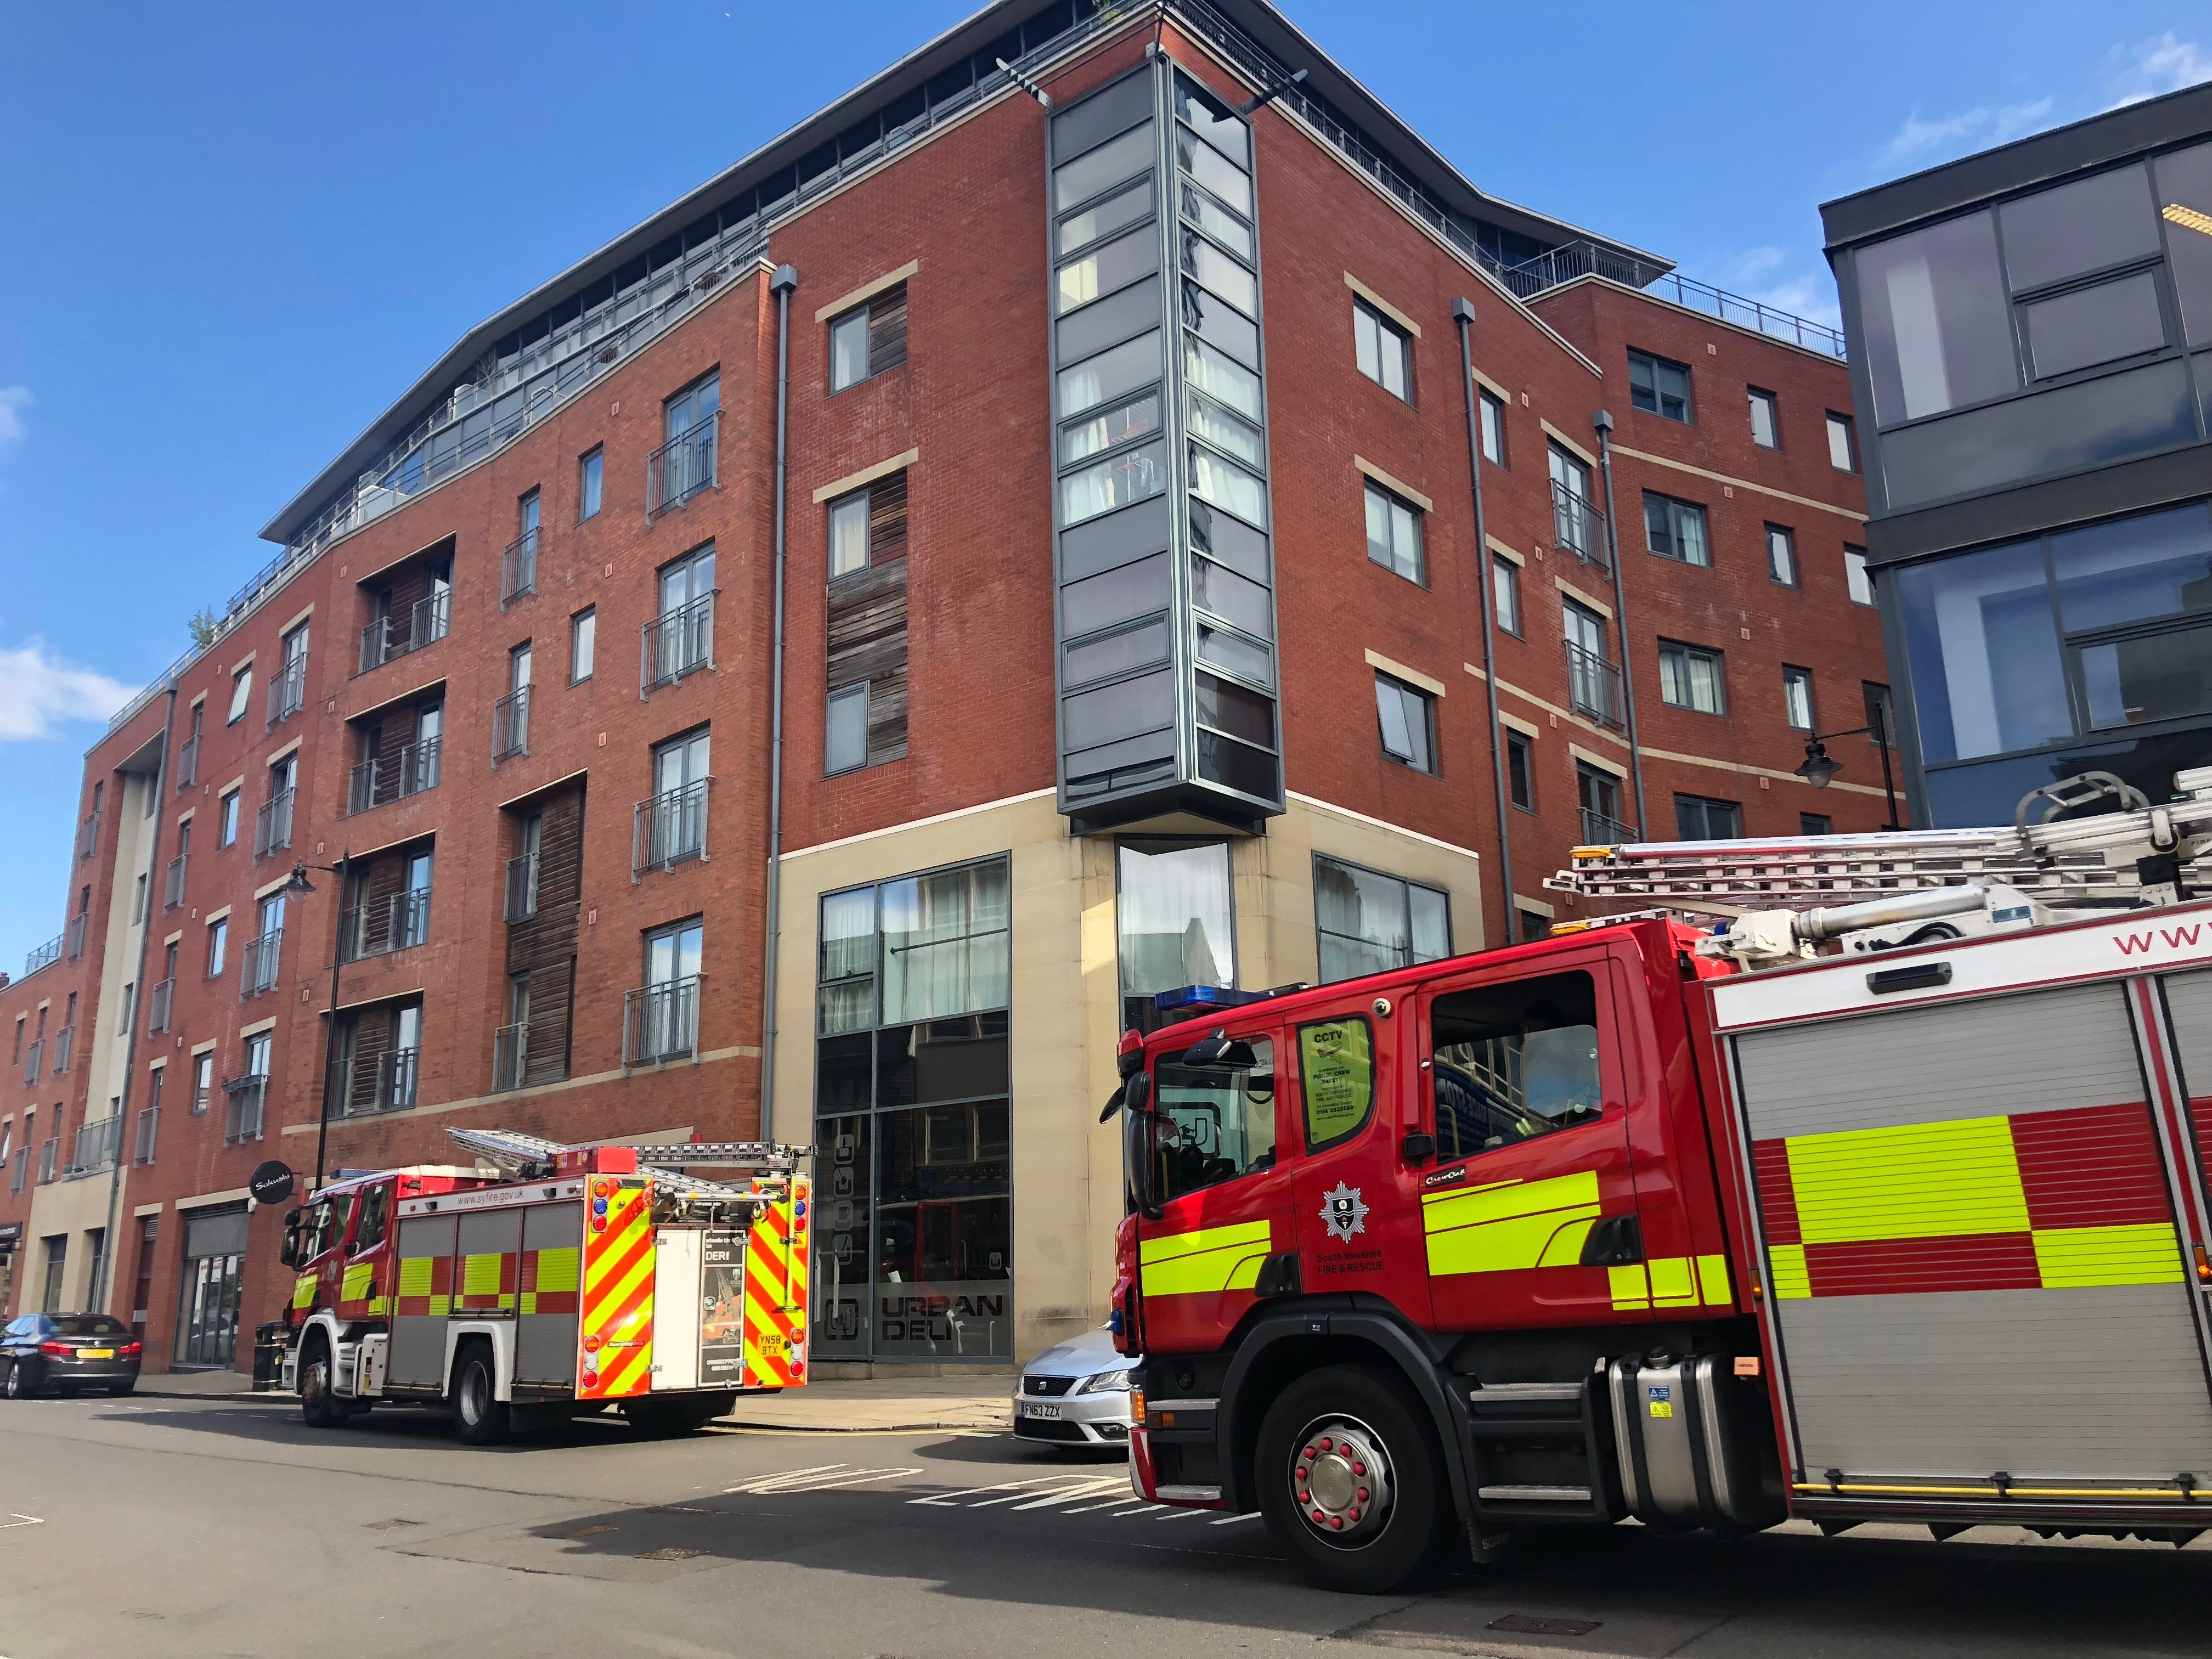 Barbecue on Sheffield balcony sparks fire alert   The Star